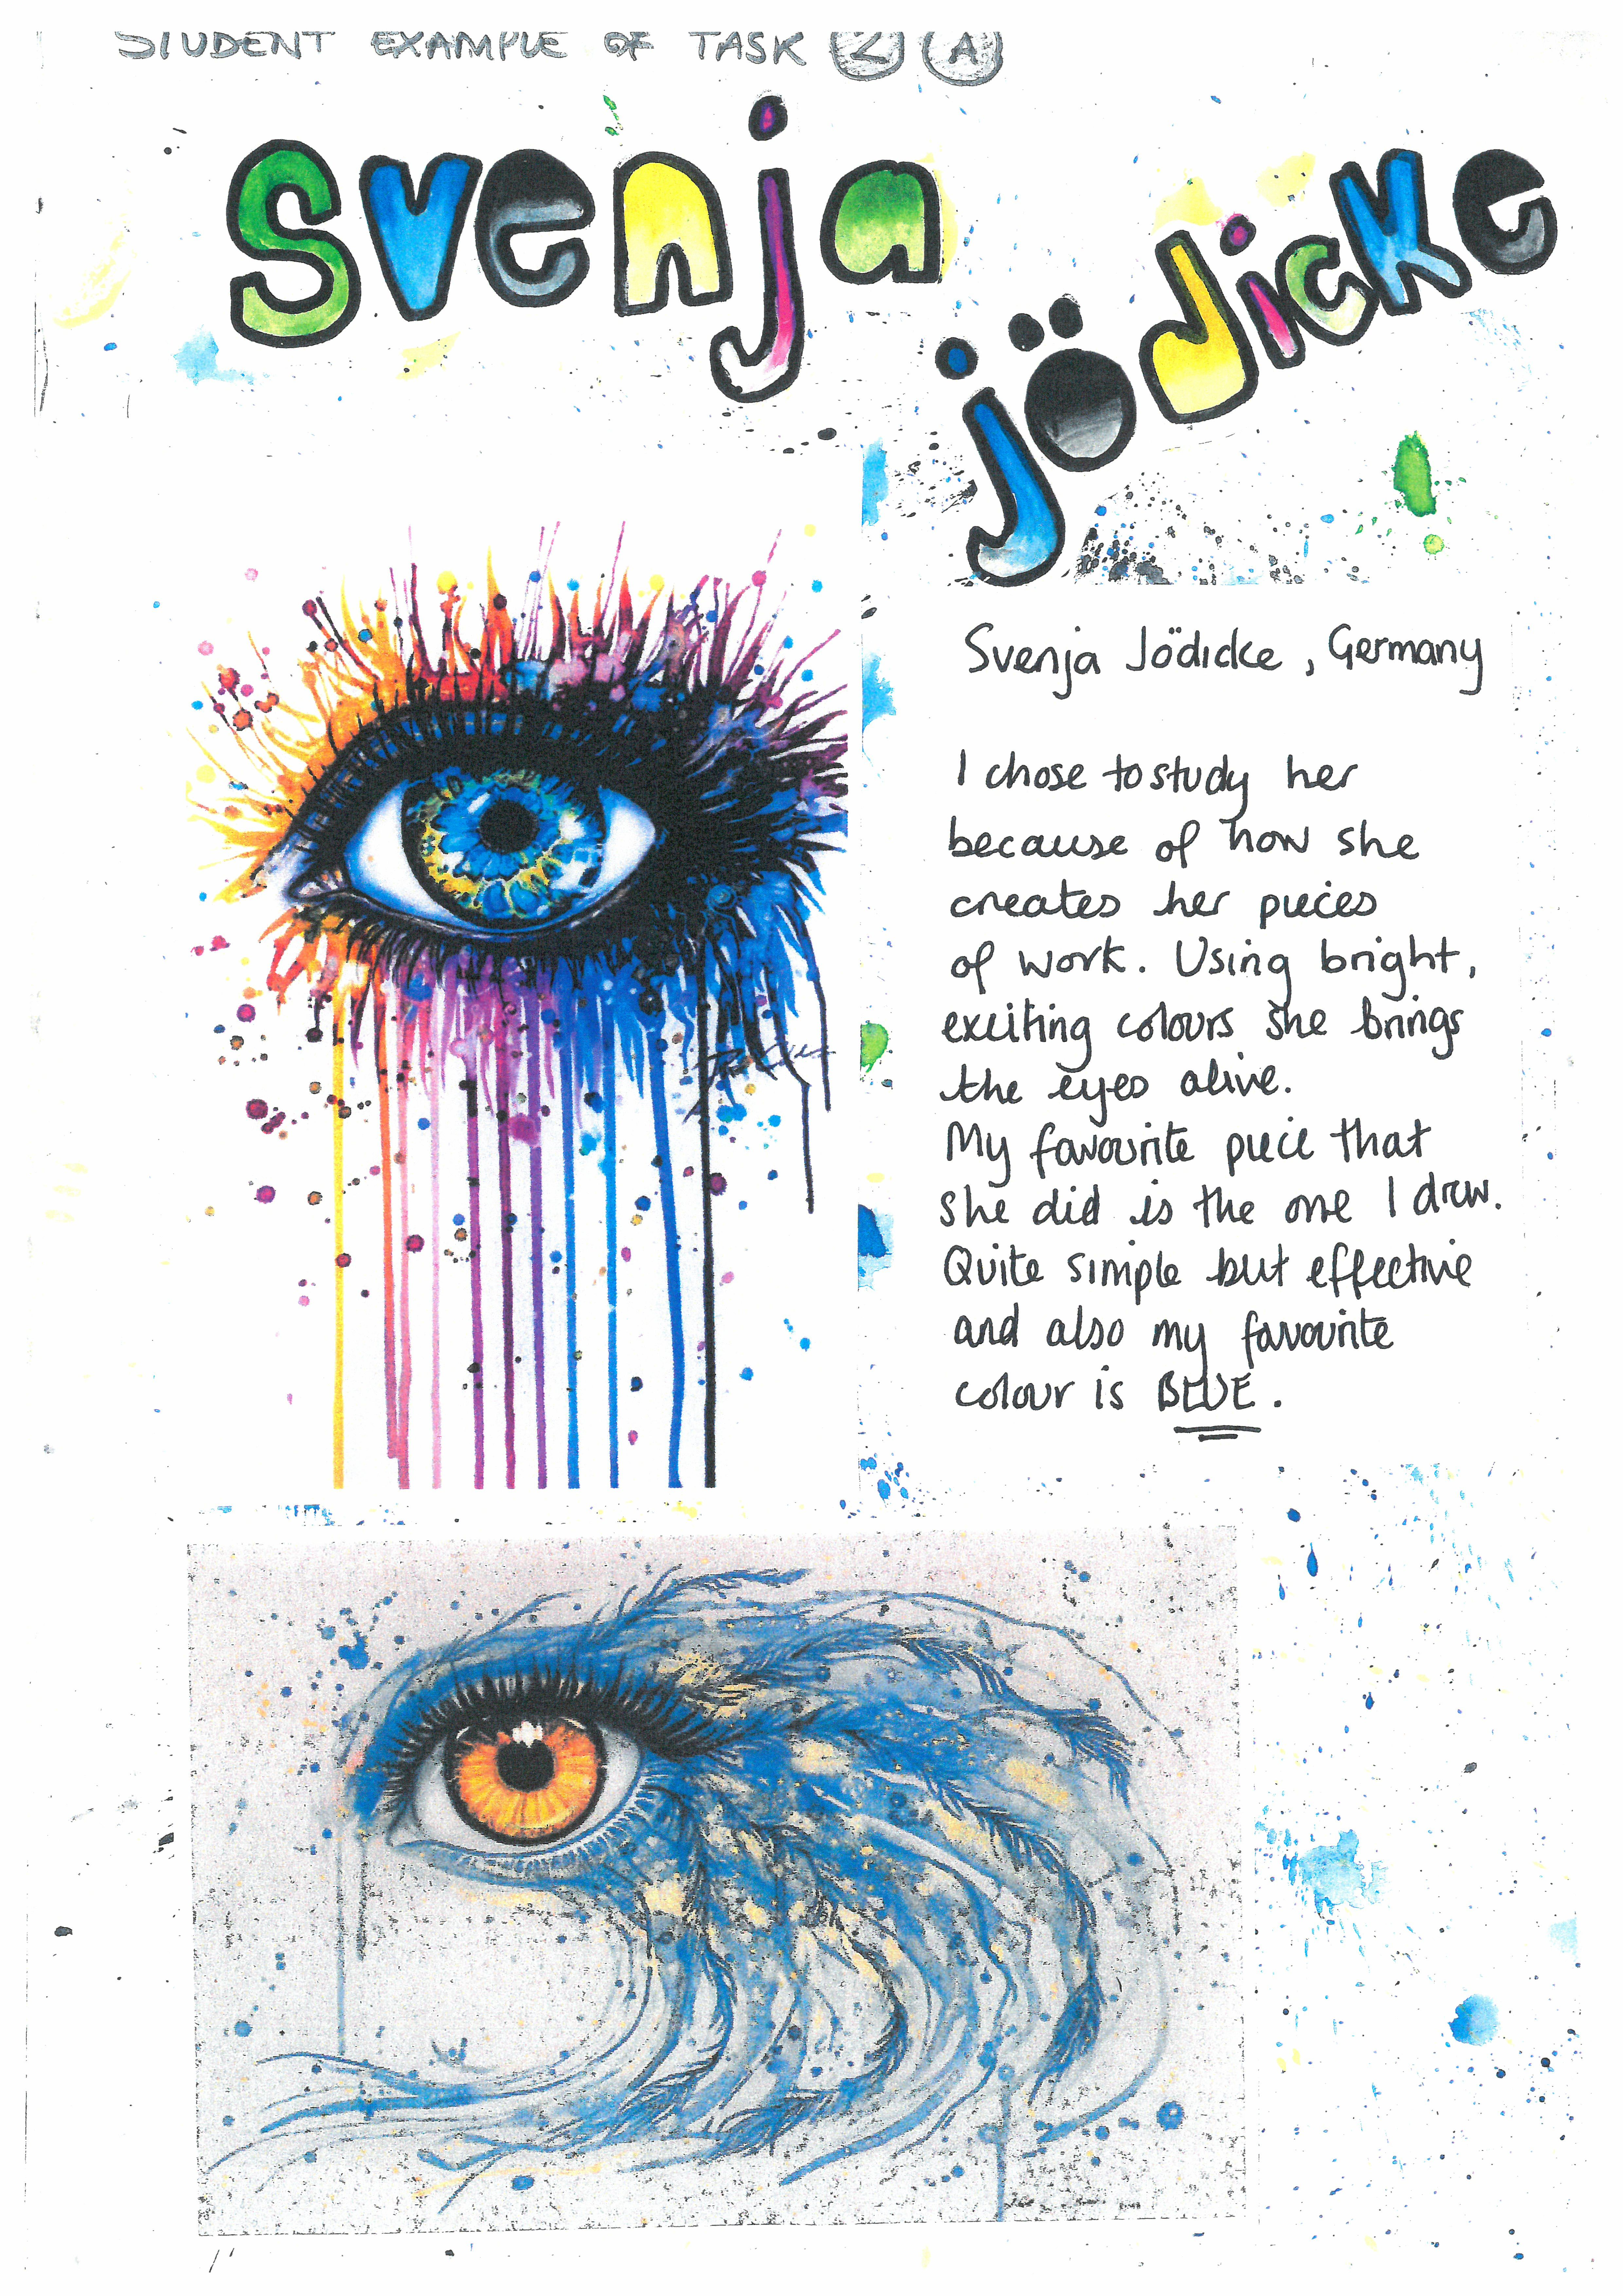 Student Suport Booklet Eyes Page 4